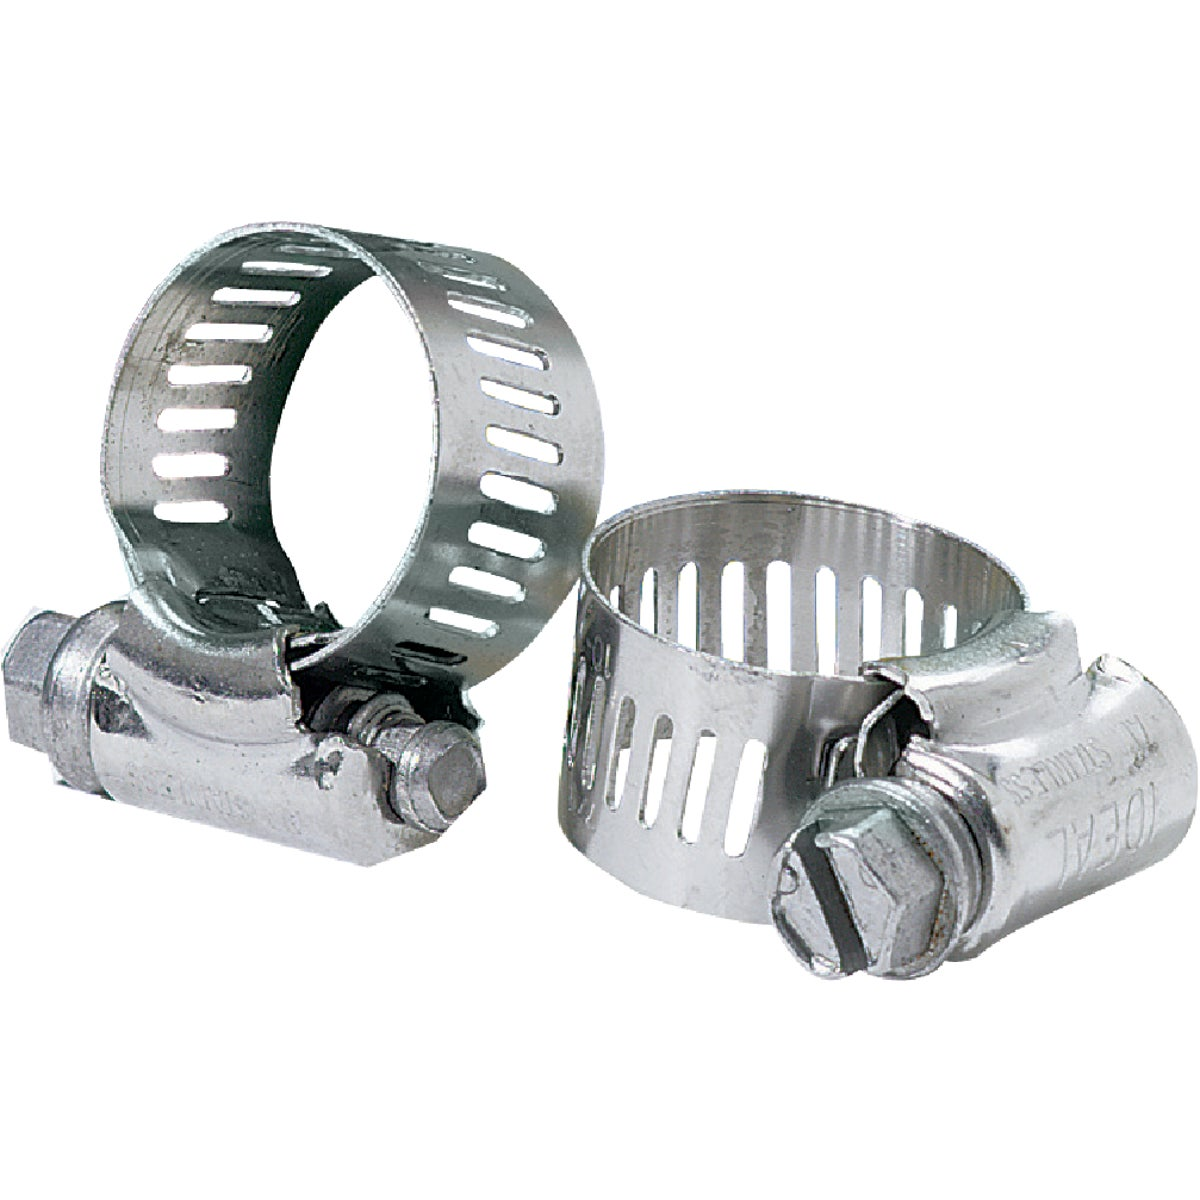 "1-3/4"" TO 2-3/4"" CLAMP"